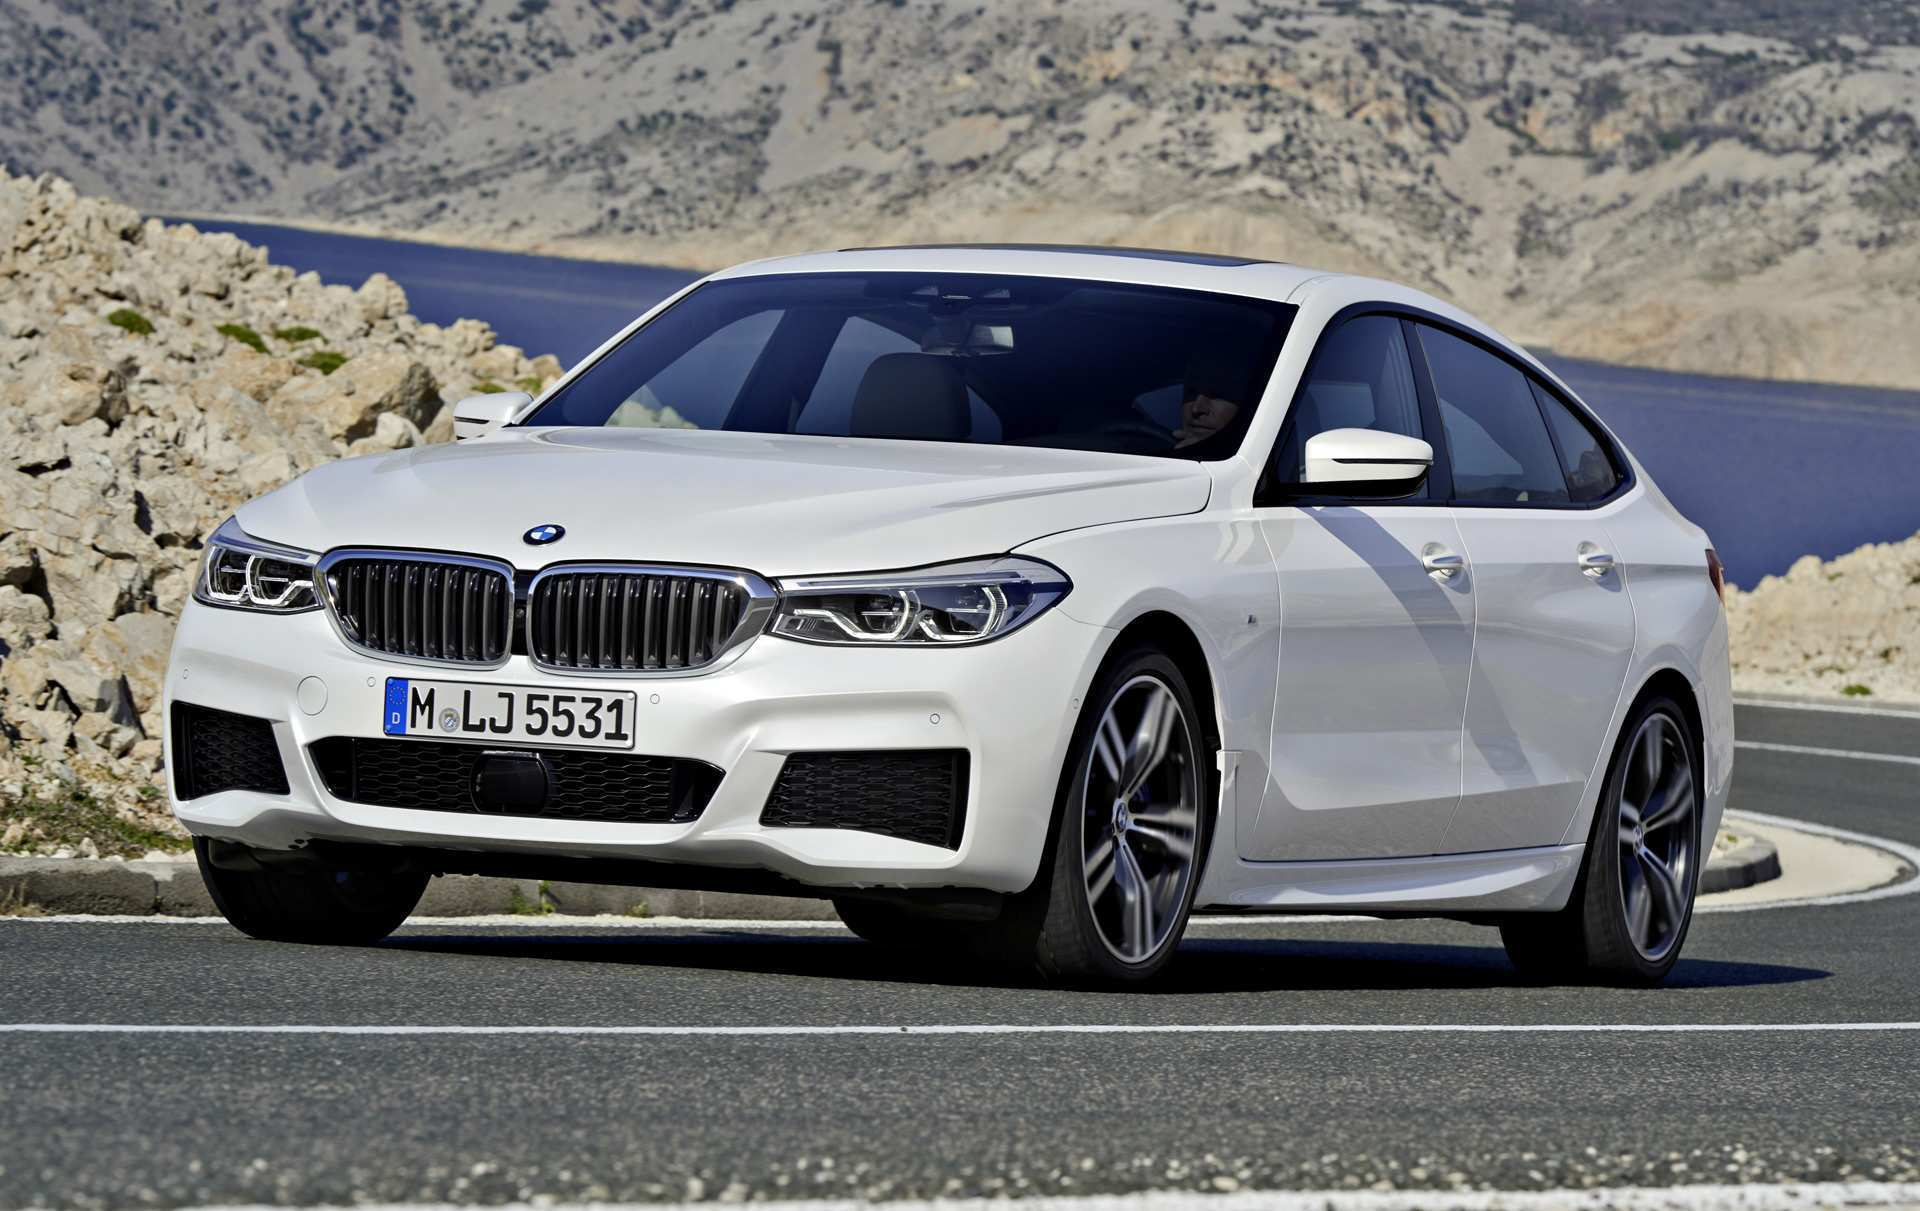 22 Best Review 2020 Bmw 9 Serisi Interior by 2020 Bmw 9 Serisi